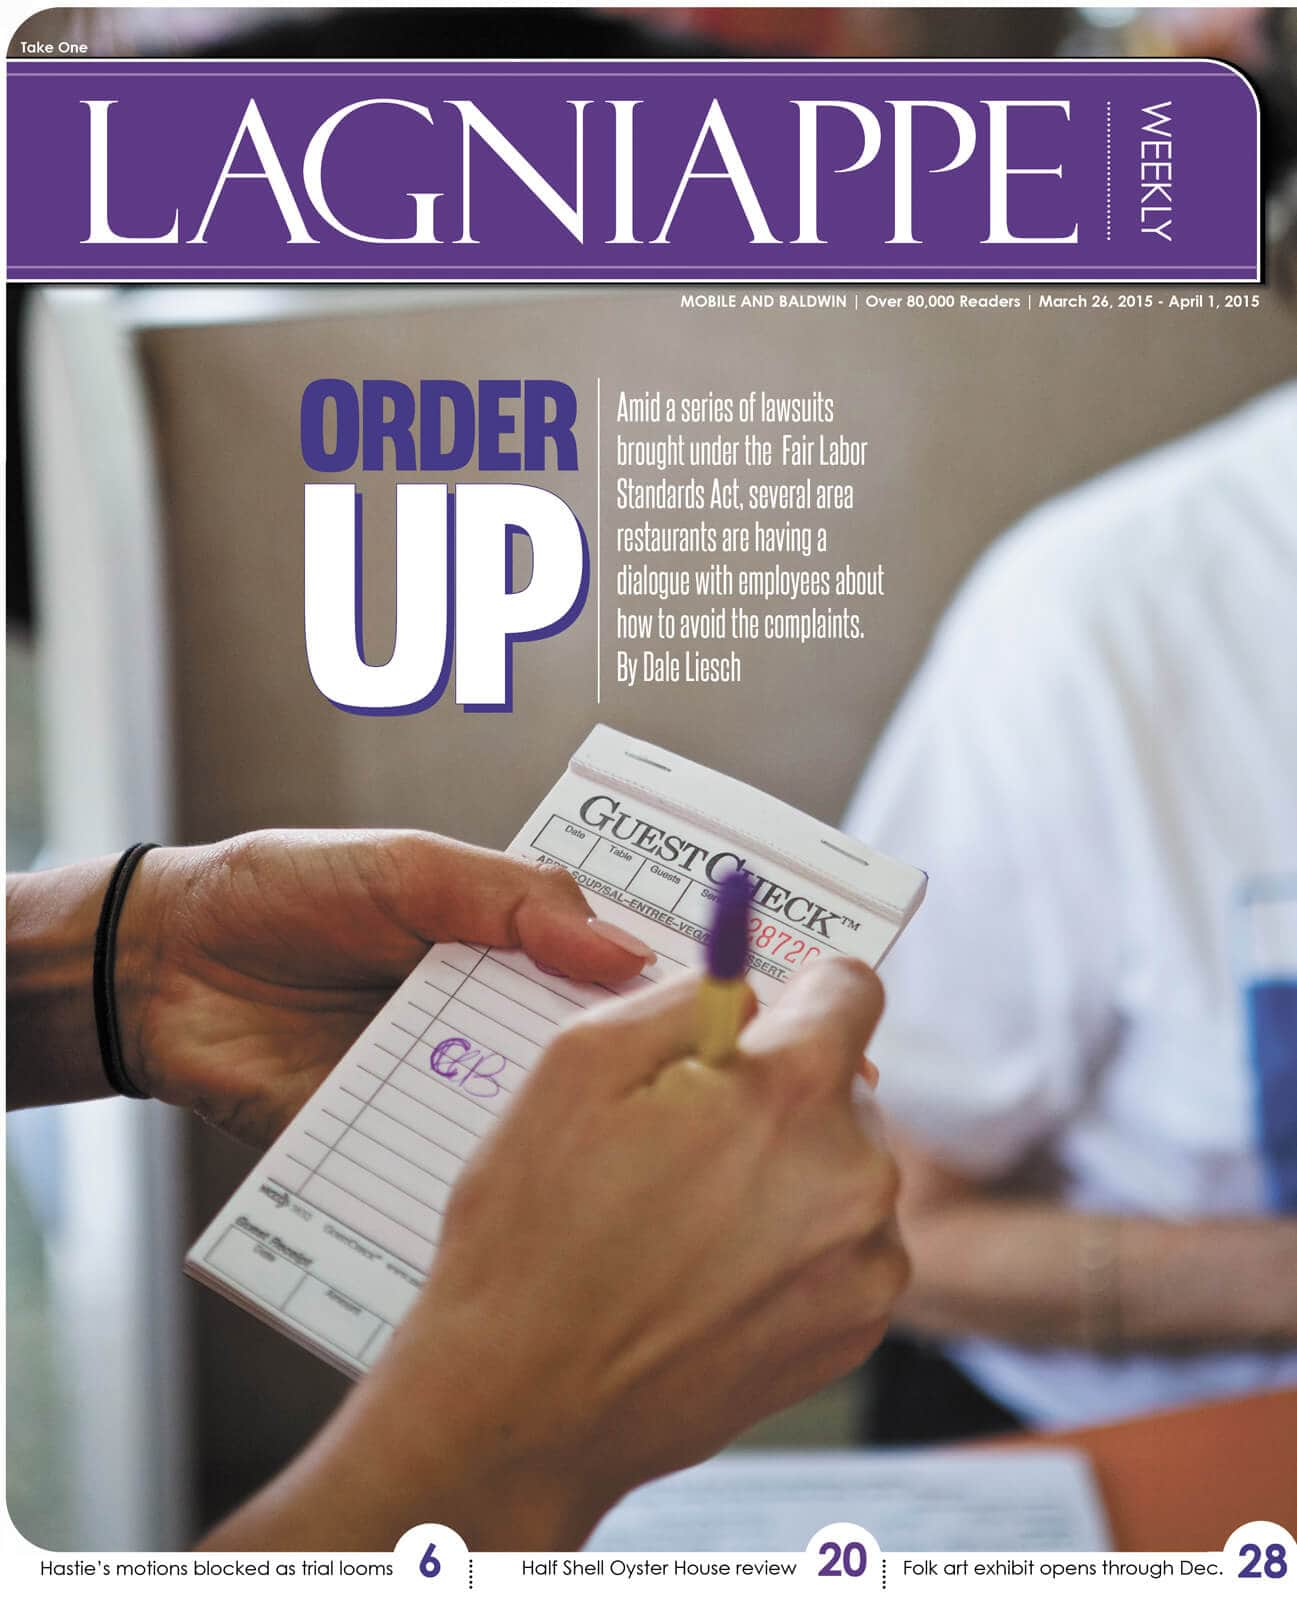 COVER STORY: Servers, lawyers react to rash of lawsuits against local restaurants